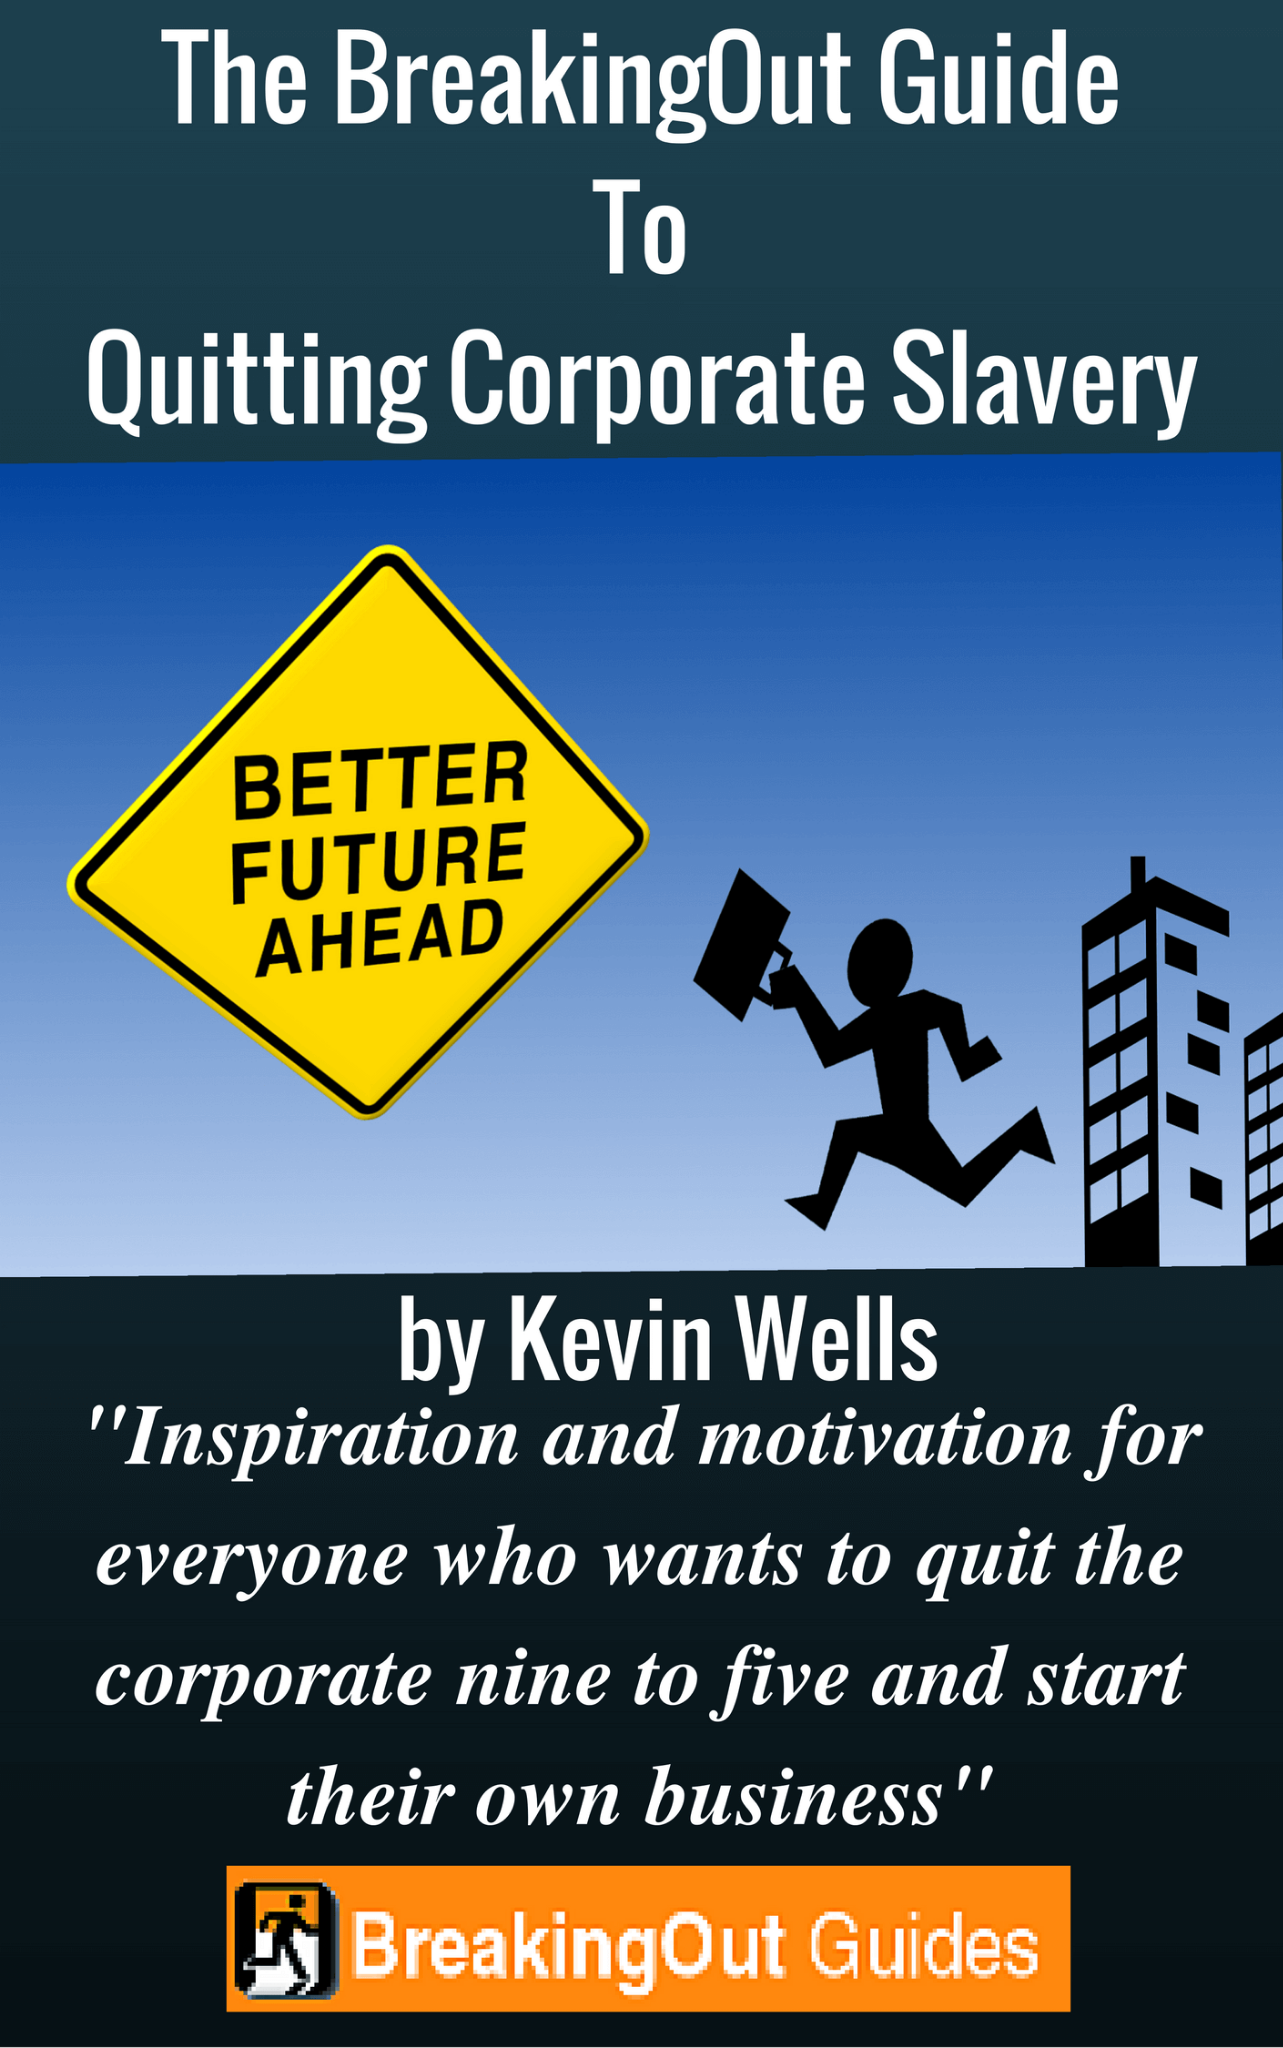 The BreakingOut Guide To Quitting Corporate Slavery